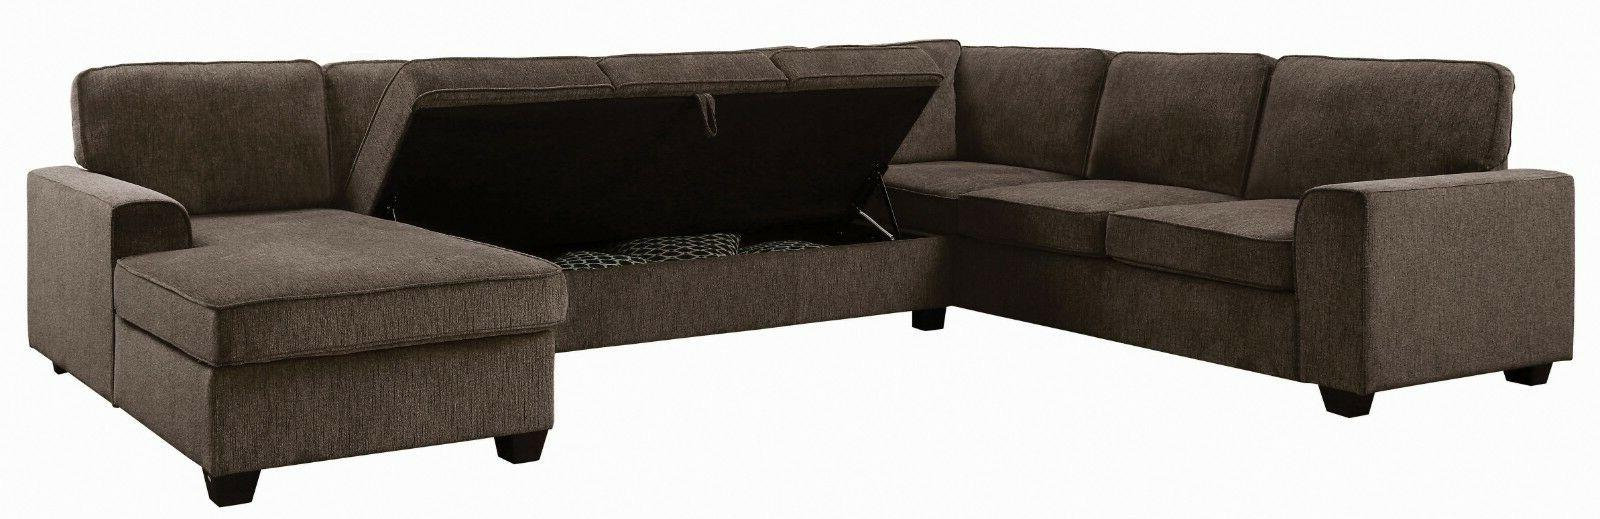 Transitional Fabric Sectional Sofa with Storage Brown